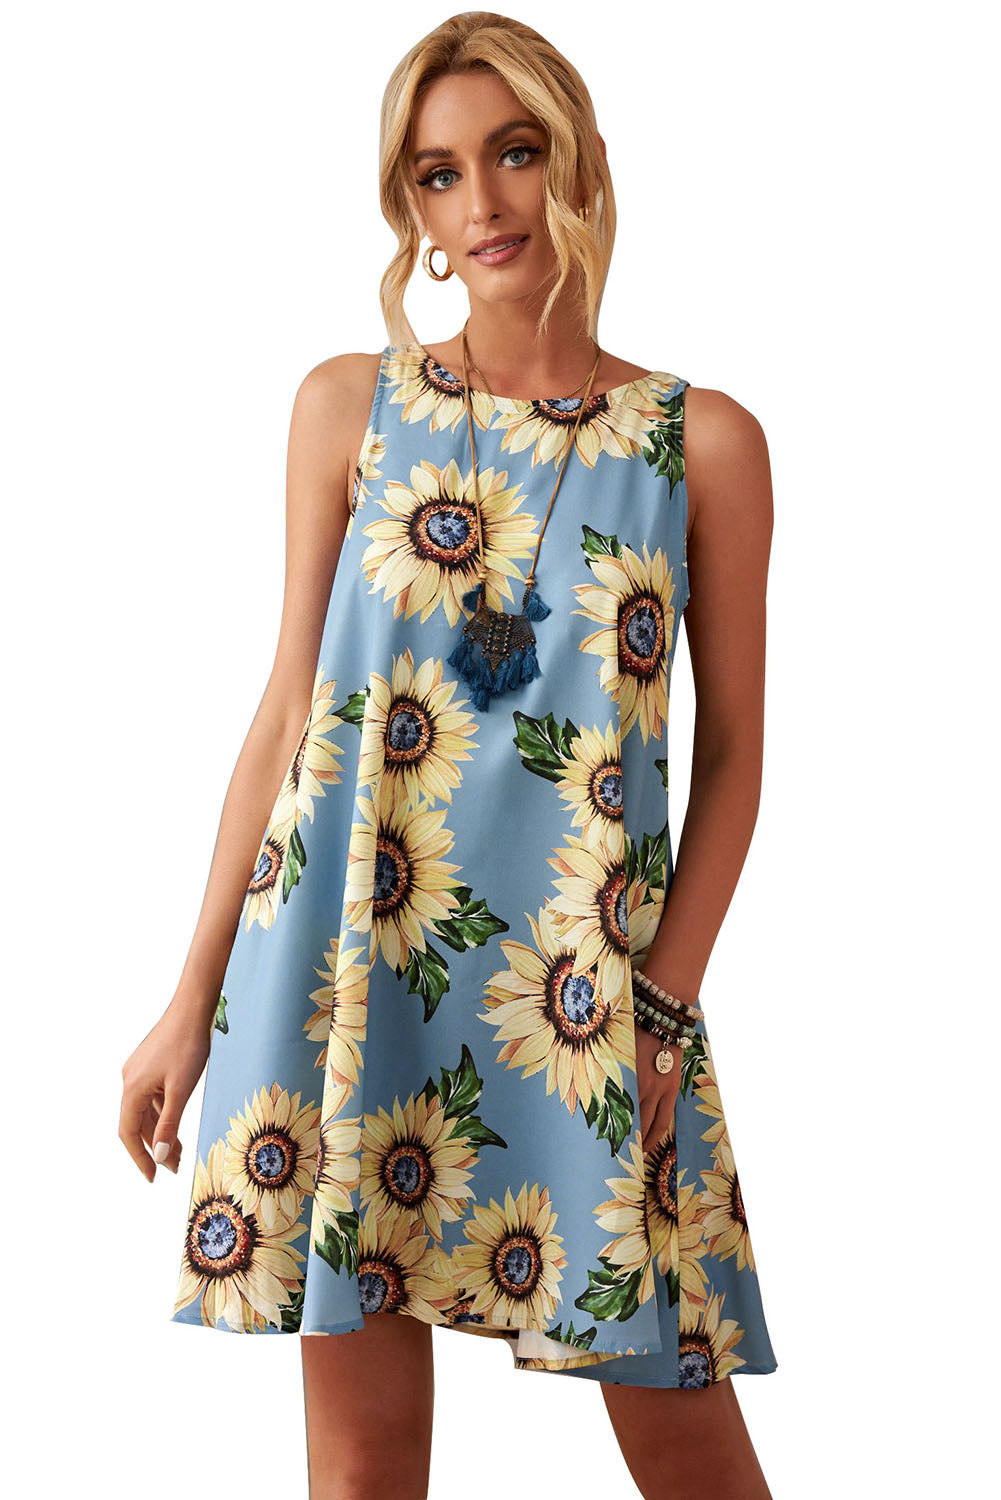 Blue Sunflower Print Tank Dress with side pockets